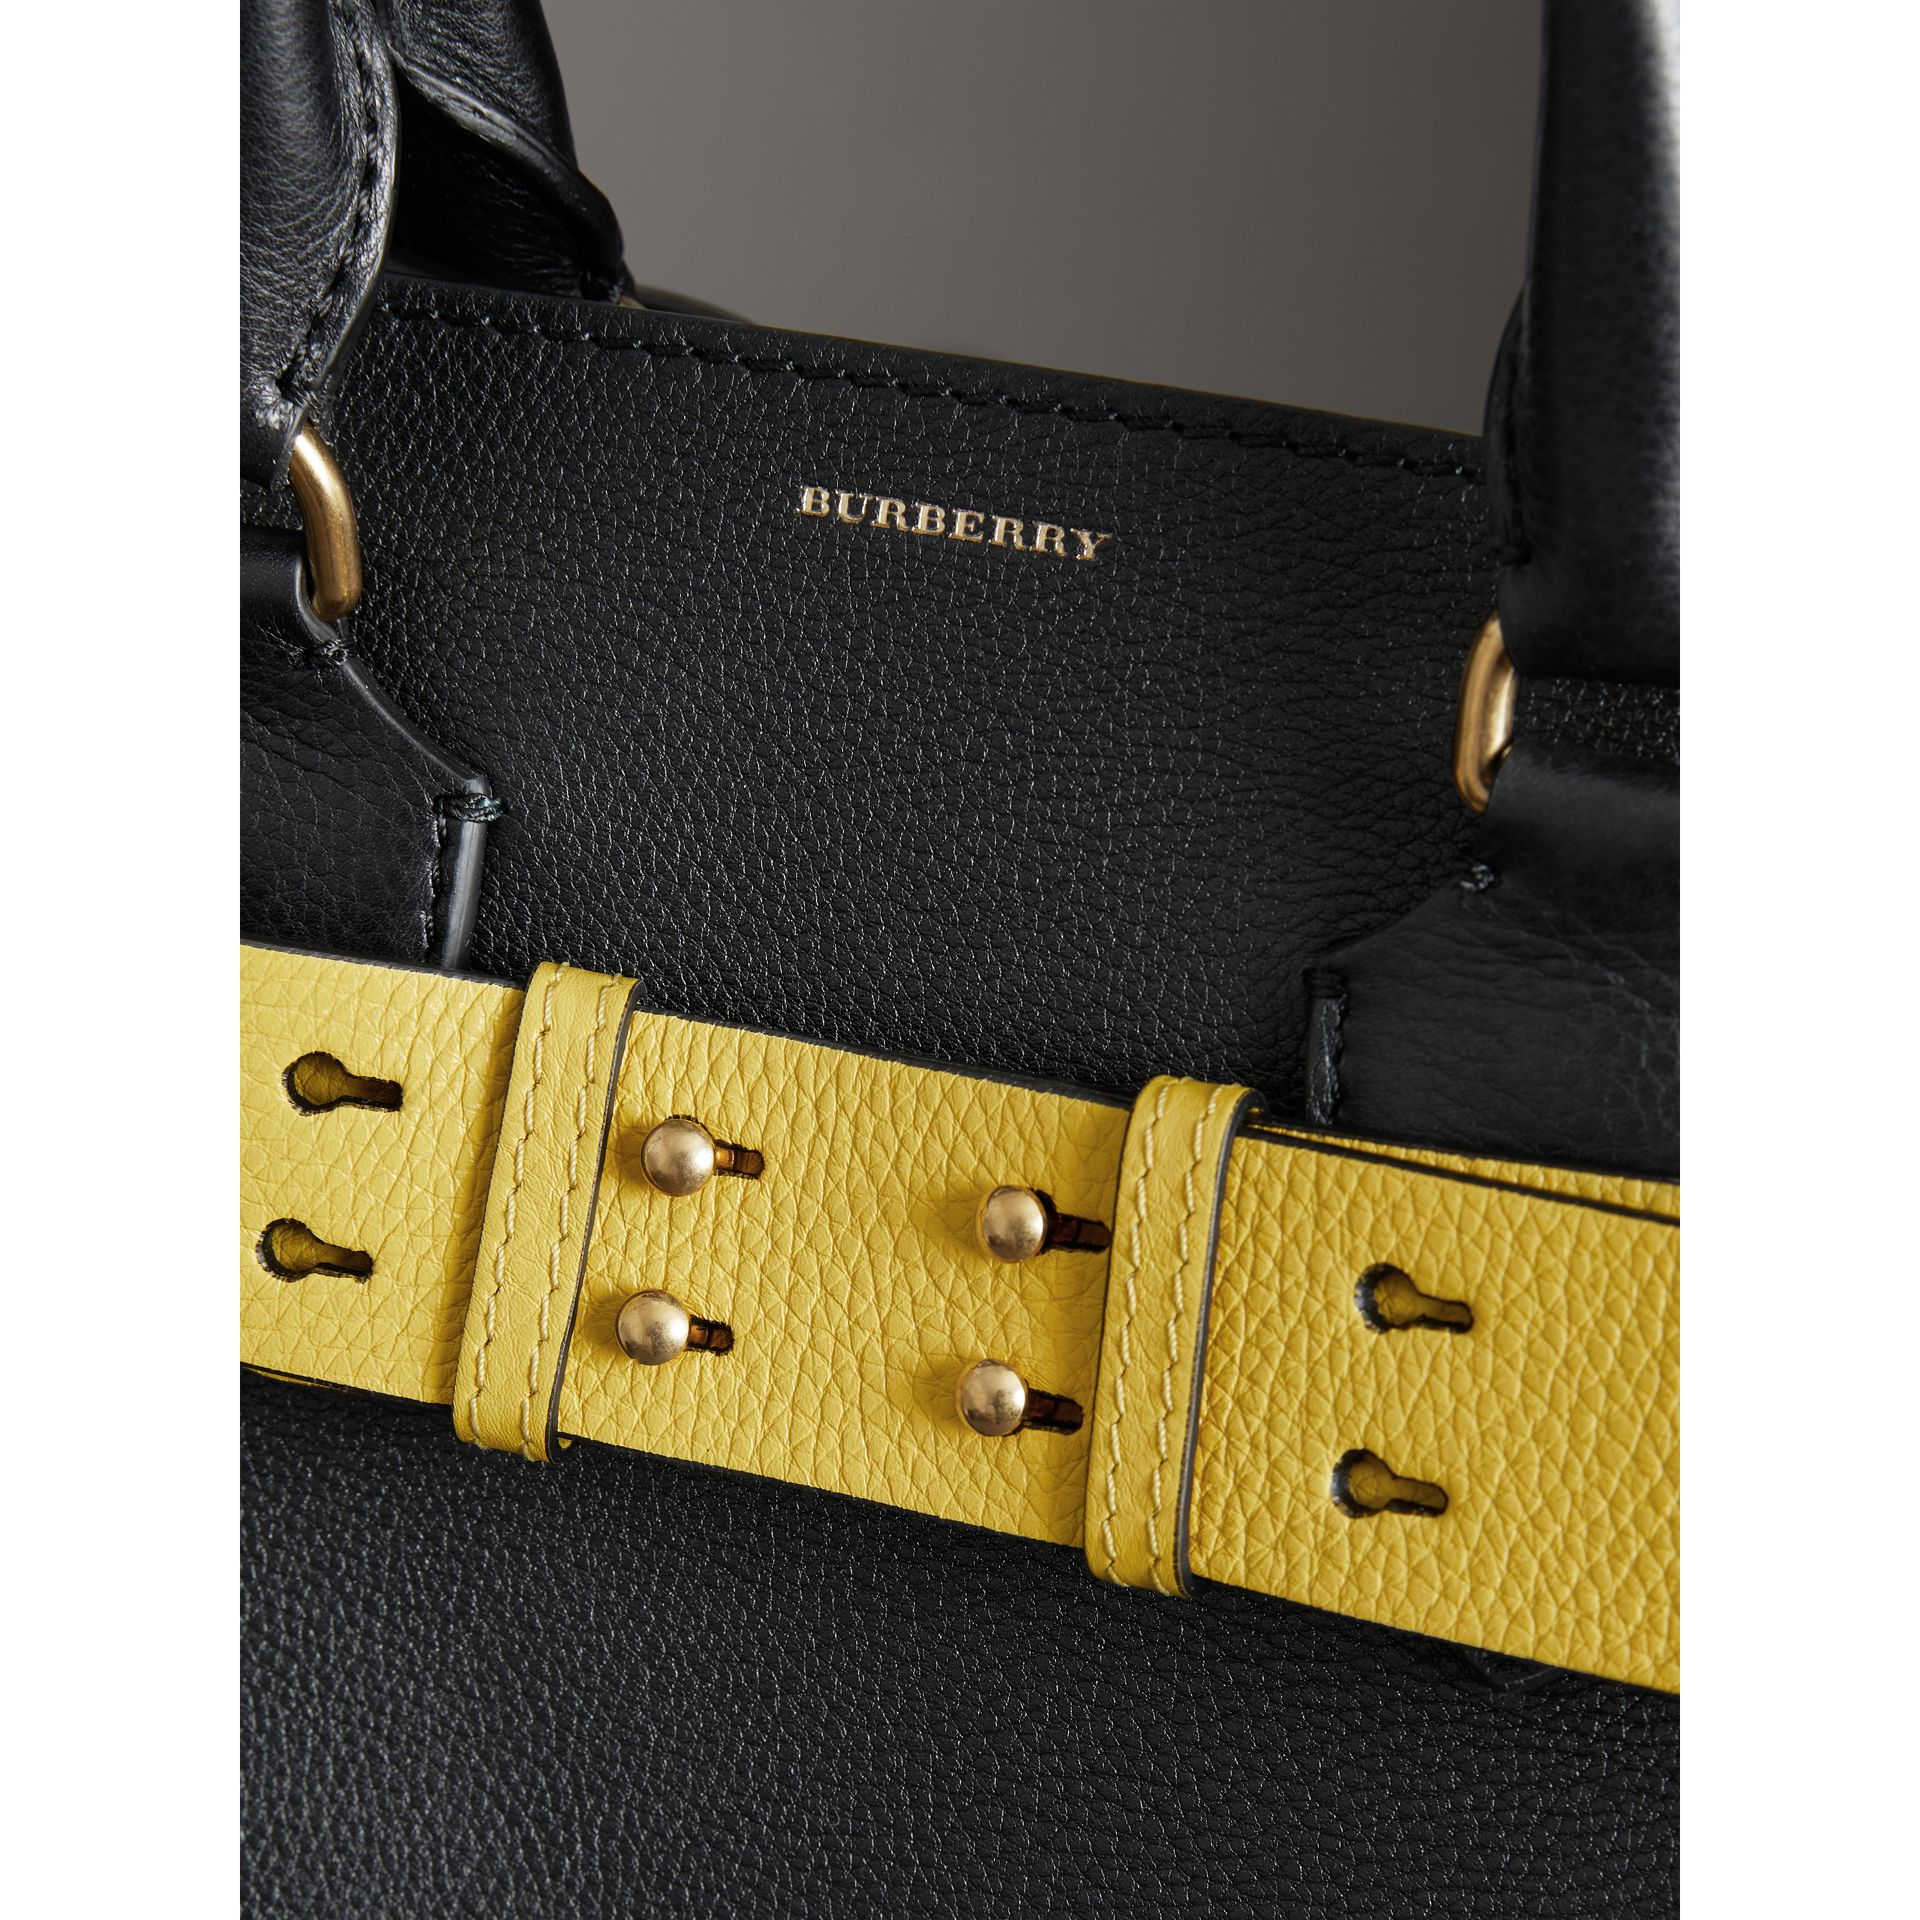 Sac The Belt moyen en cuir (Noir) - Femme | Burberry Canada - photo de la galerie 1